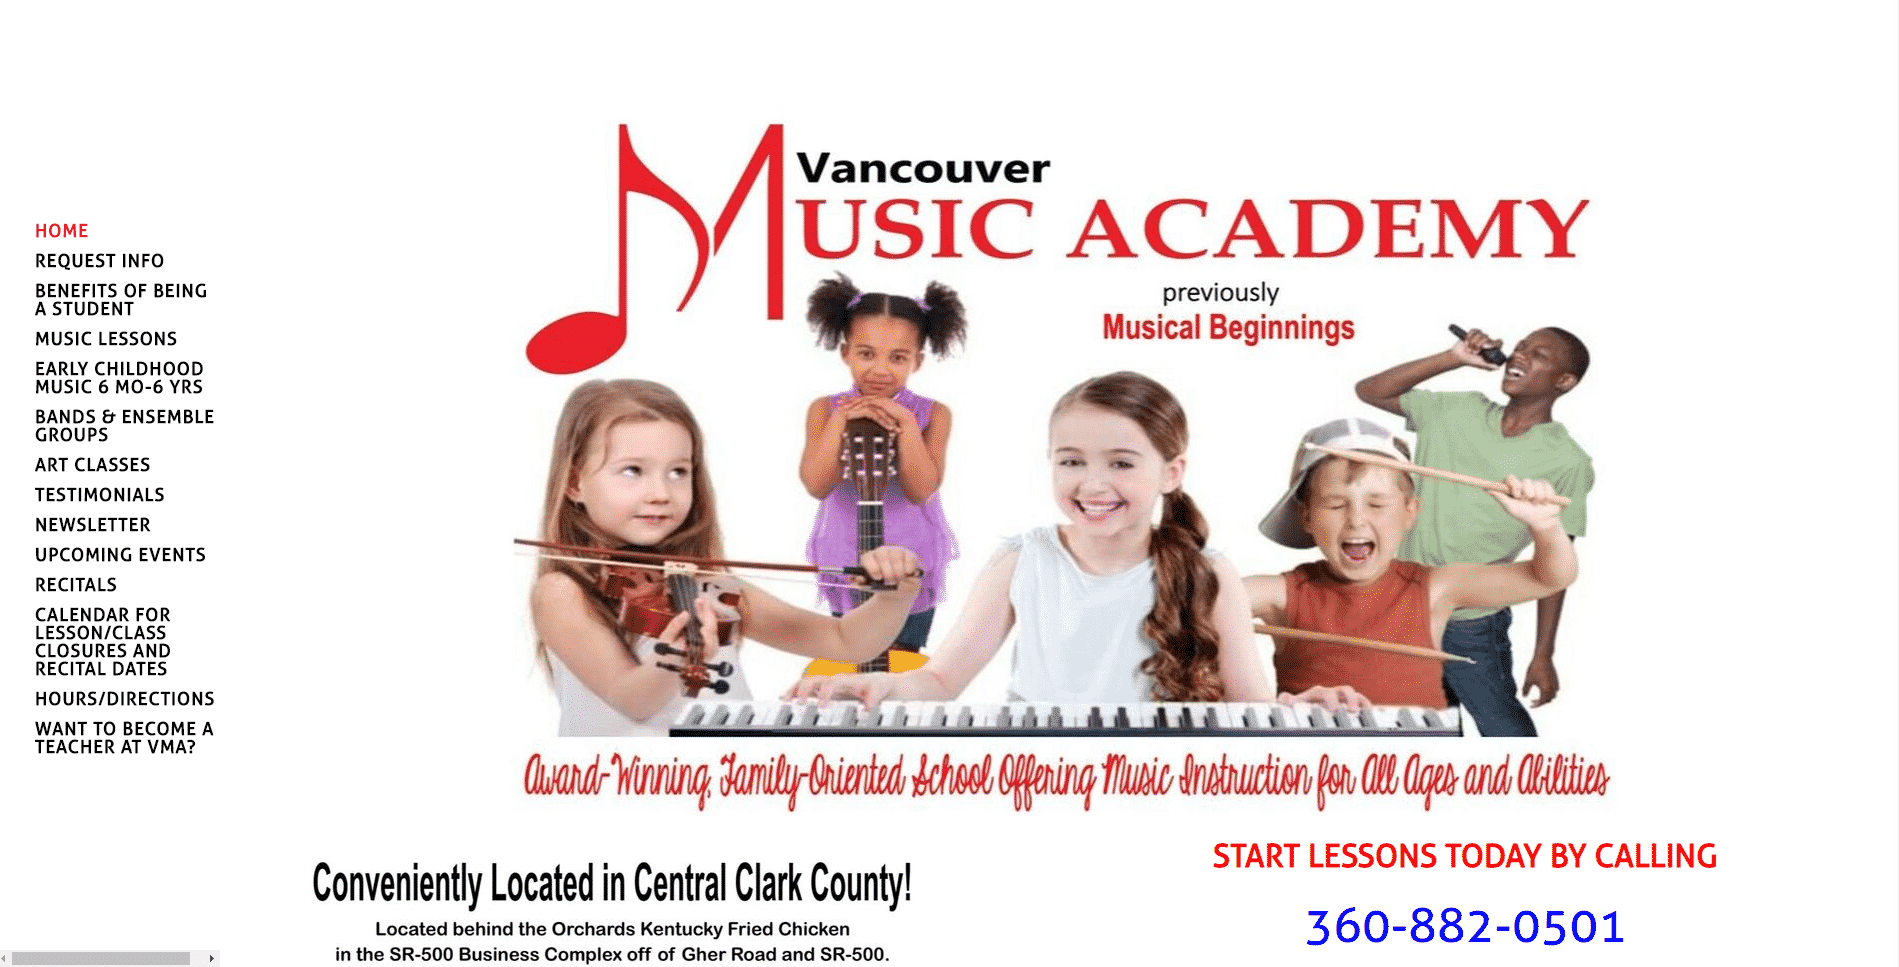 Vancouver music academy